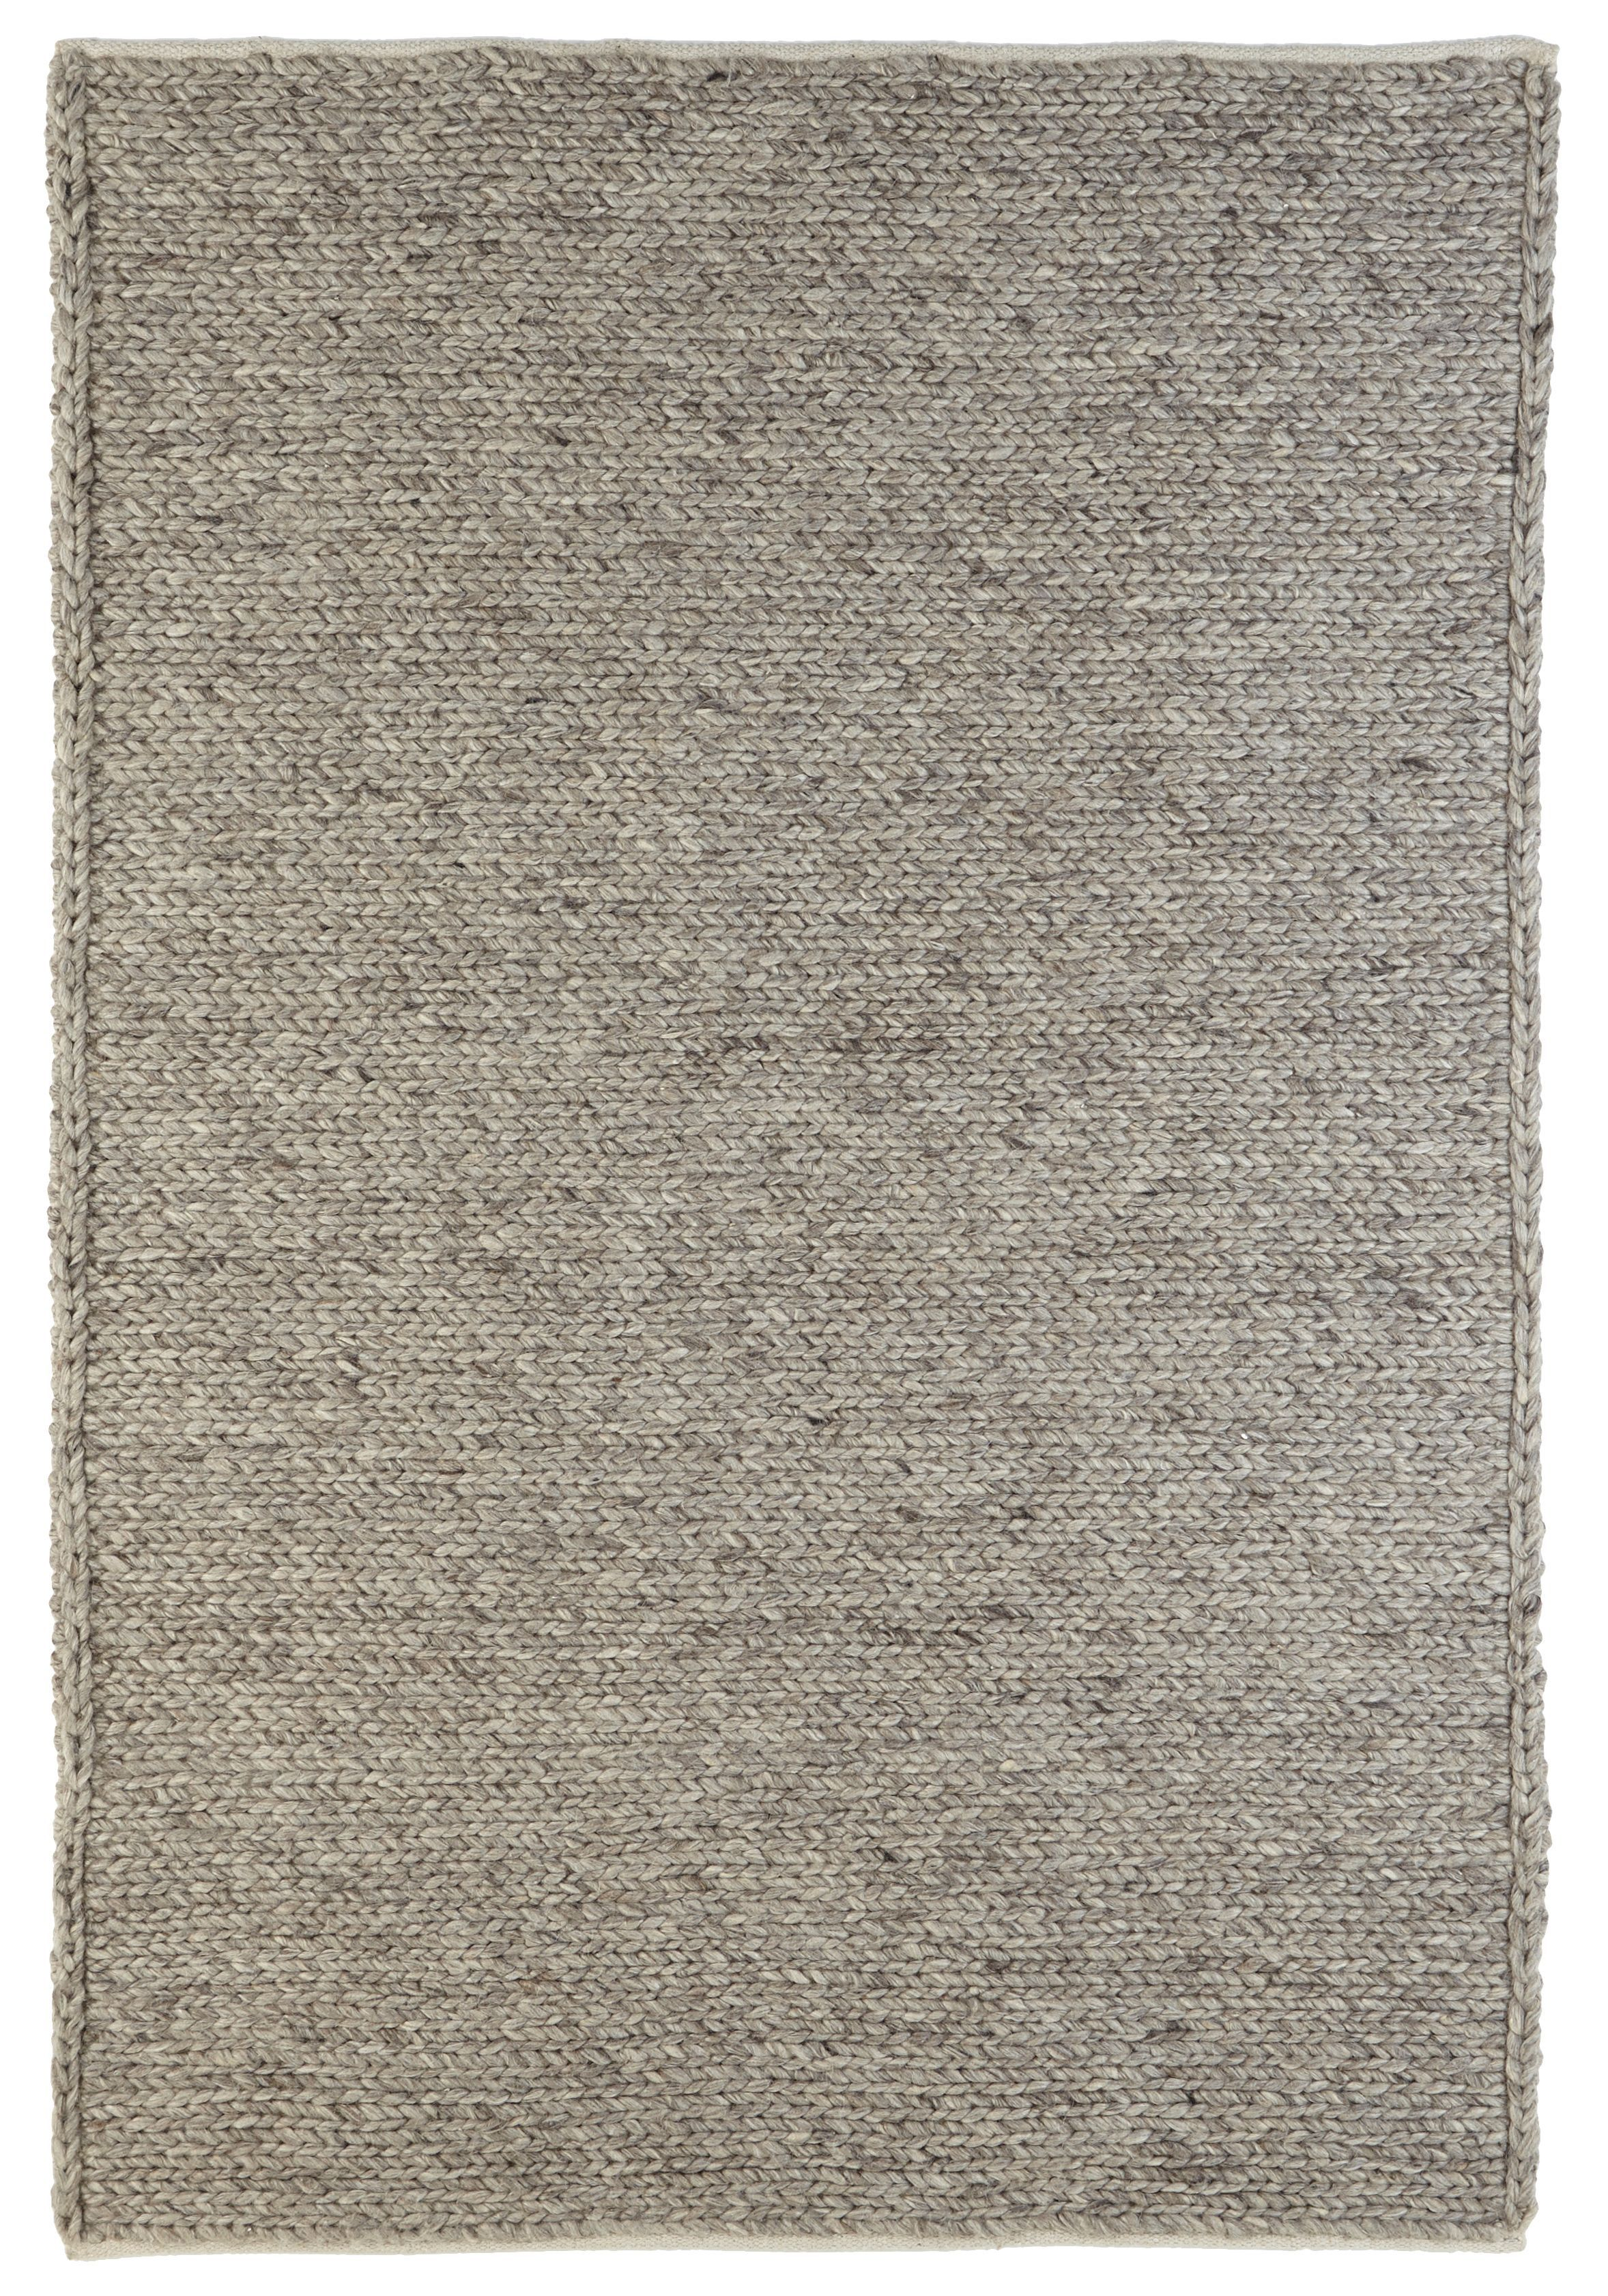 Colours Claudine Grey Thick Knit Rug (L)2.3M (W)1.6 M | Departments | DIY  at B&Q